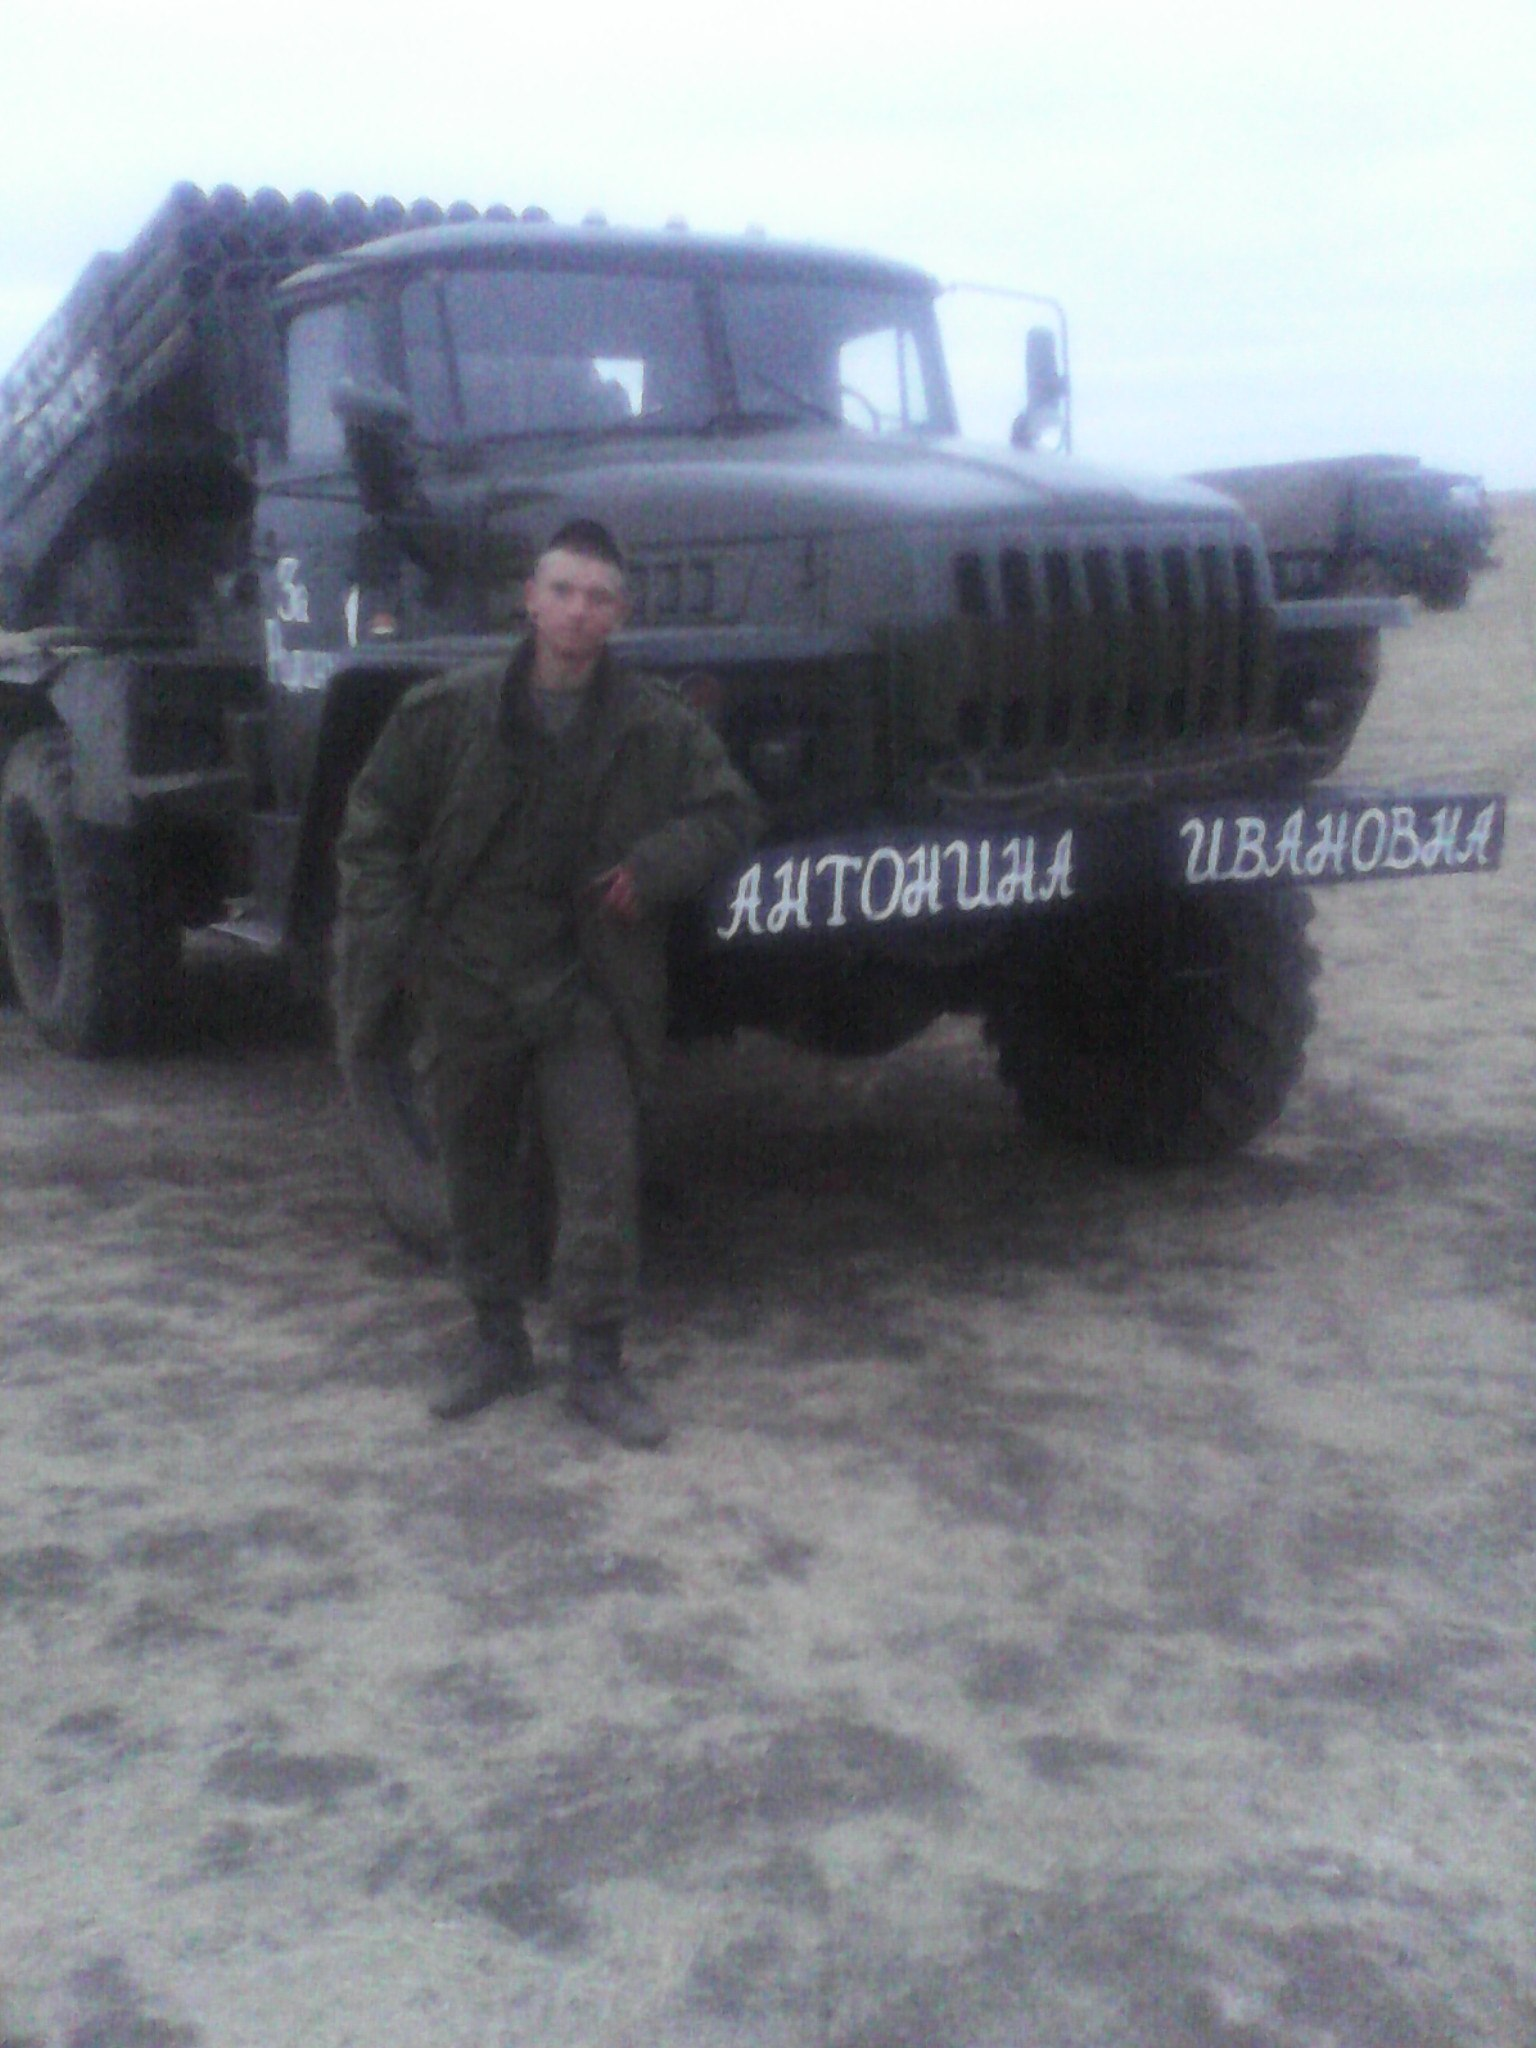 "MLRS BM-21 Grad with ""For the Motherland!"" on the right door and ""Antonina Ivanovna"" on the front bumper. The photographs are Russian servicemen of the 200th Brigade, Anatoly Gorshkov (who was serving at that time) and Nikolay Dugaev. There are archives (1, 2) of Gorshkov's VK pages with a report on his dismissal from the reactive artillery battalion of the 200th Brigade, and a photograph with a geotag from Pechenga). Archive / Original"